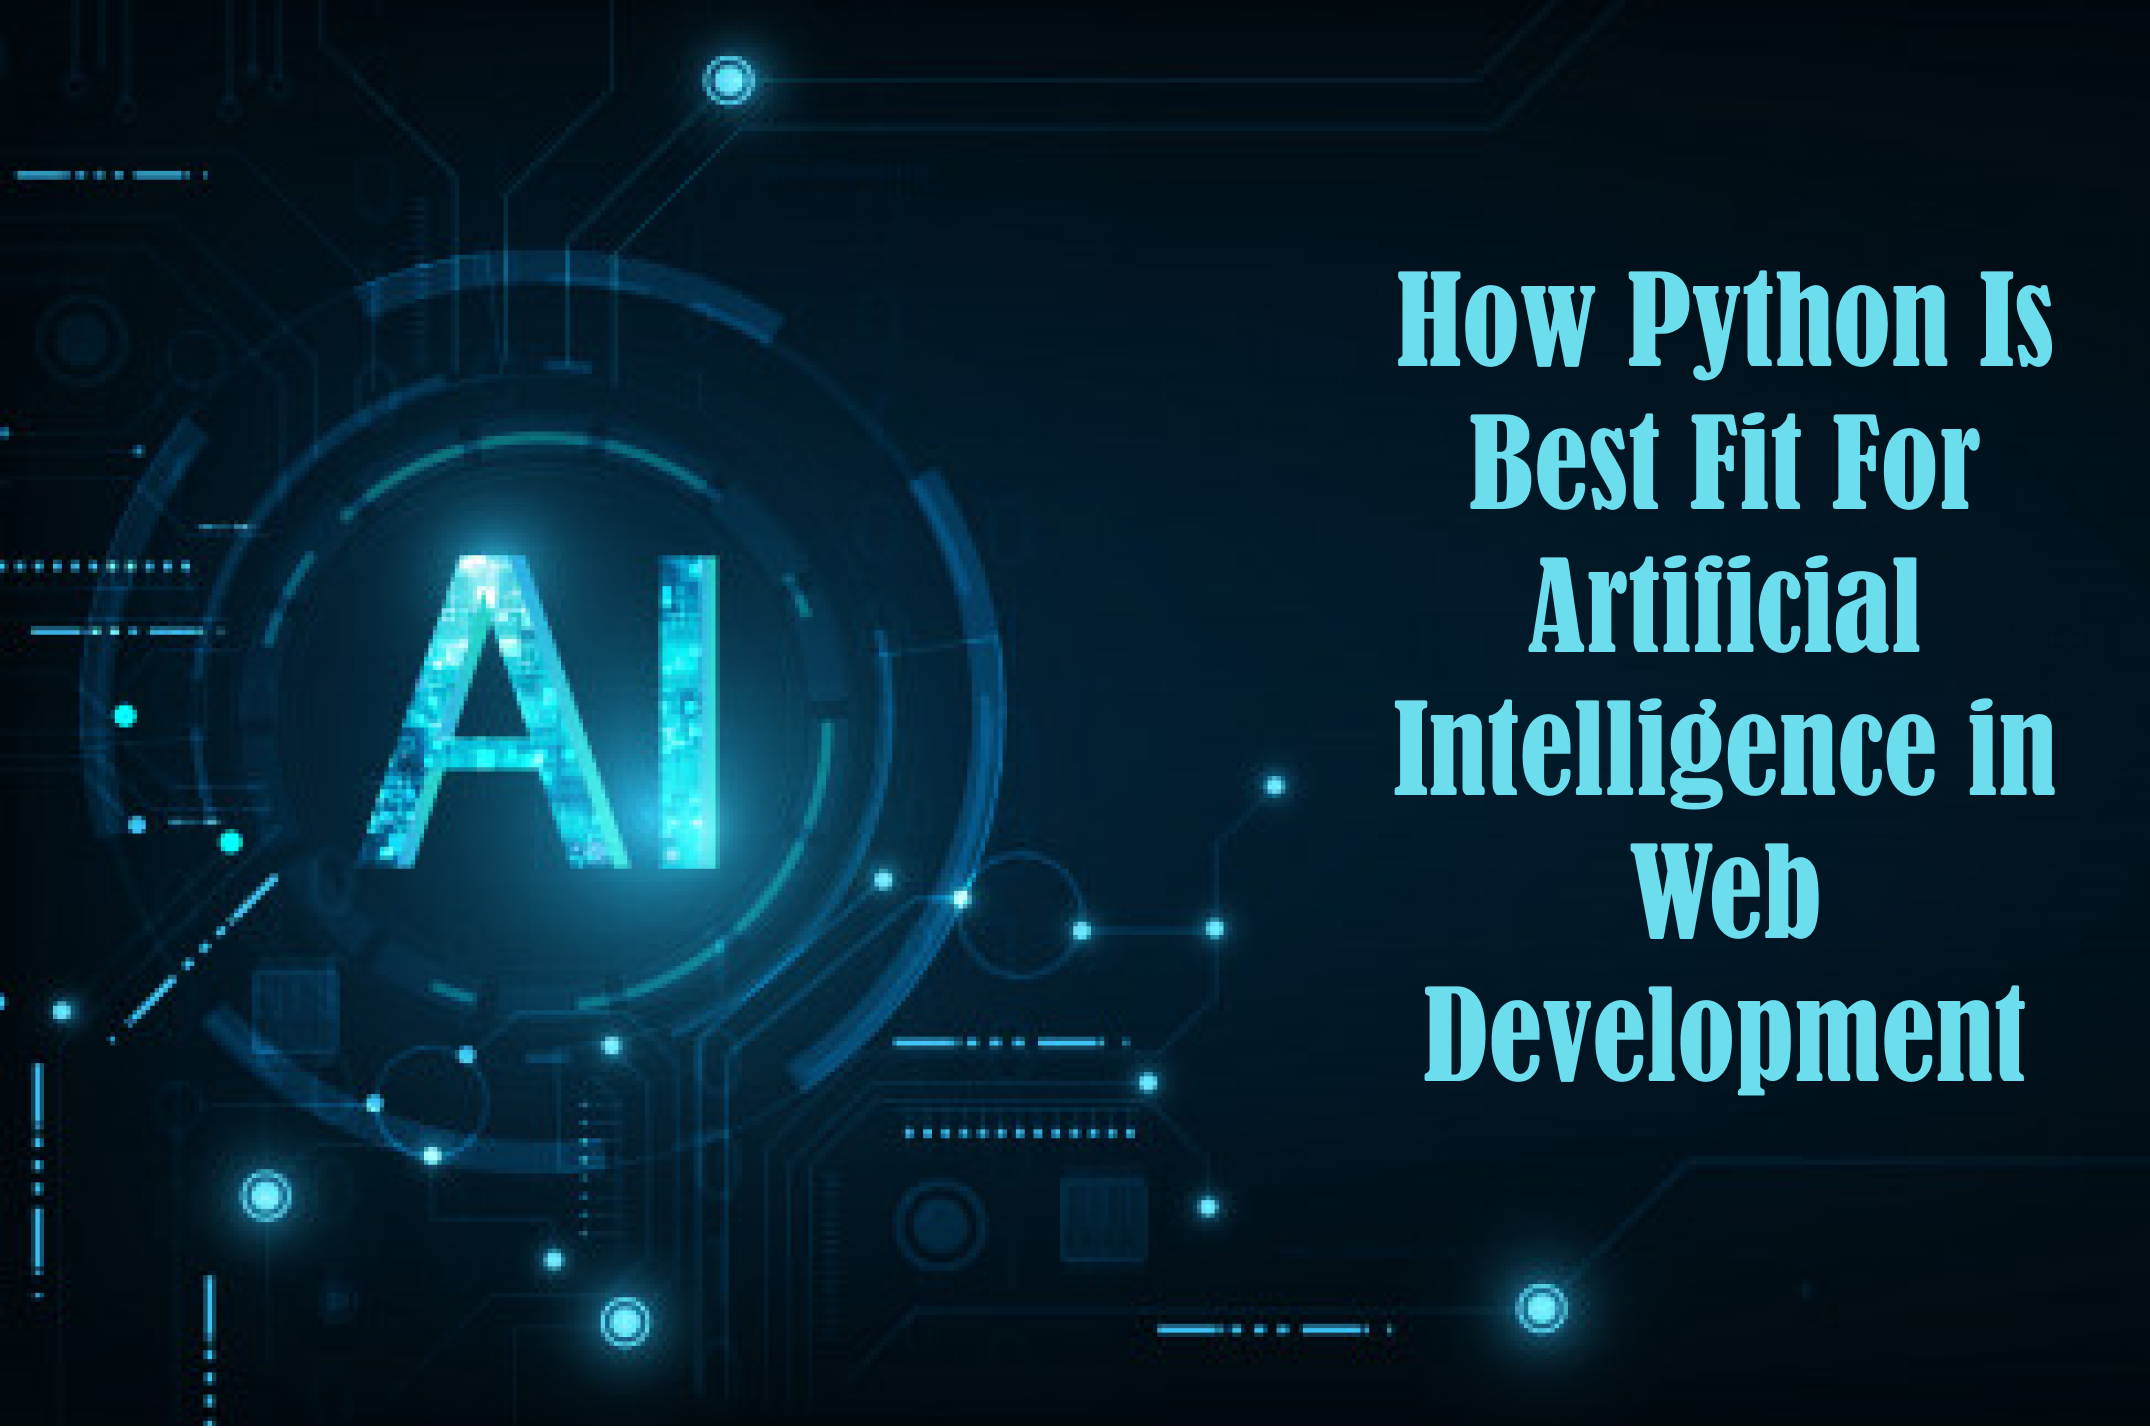 Anteelo design how python is the best fit for artificial intelligence in web development